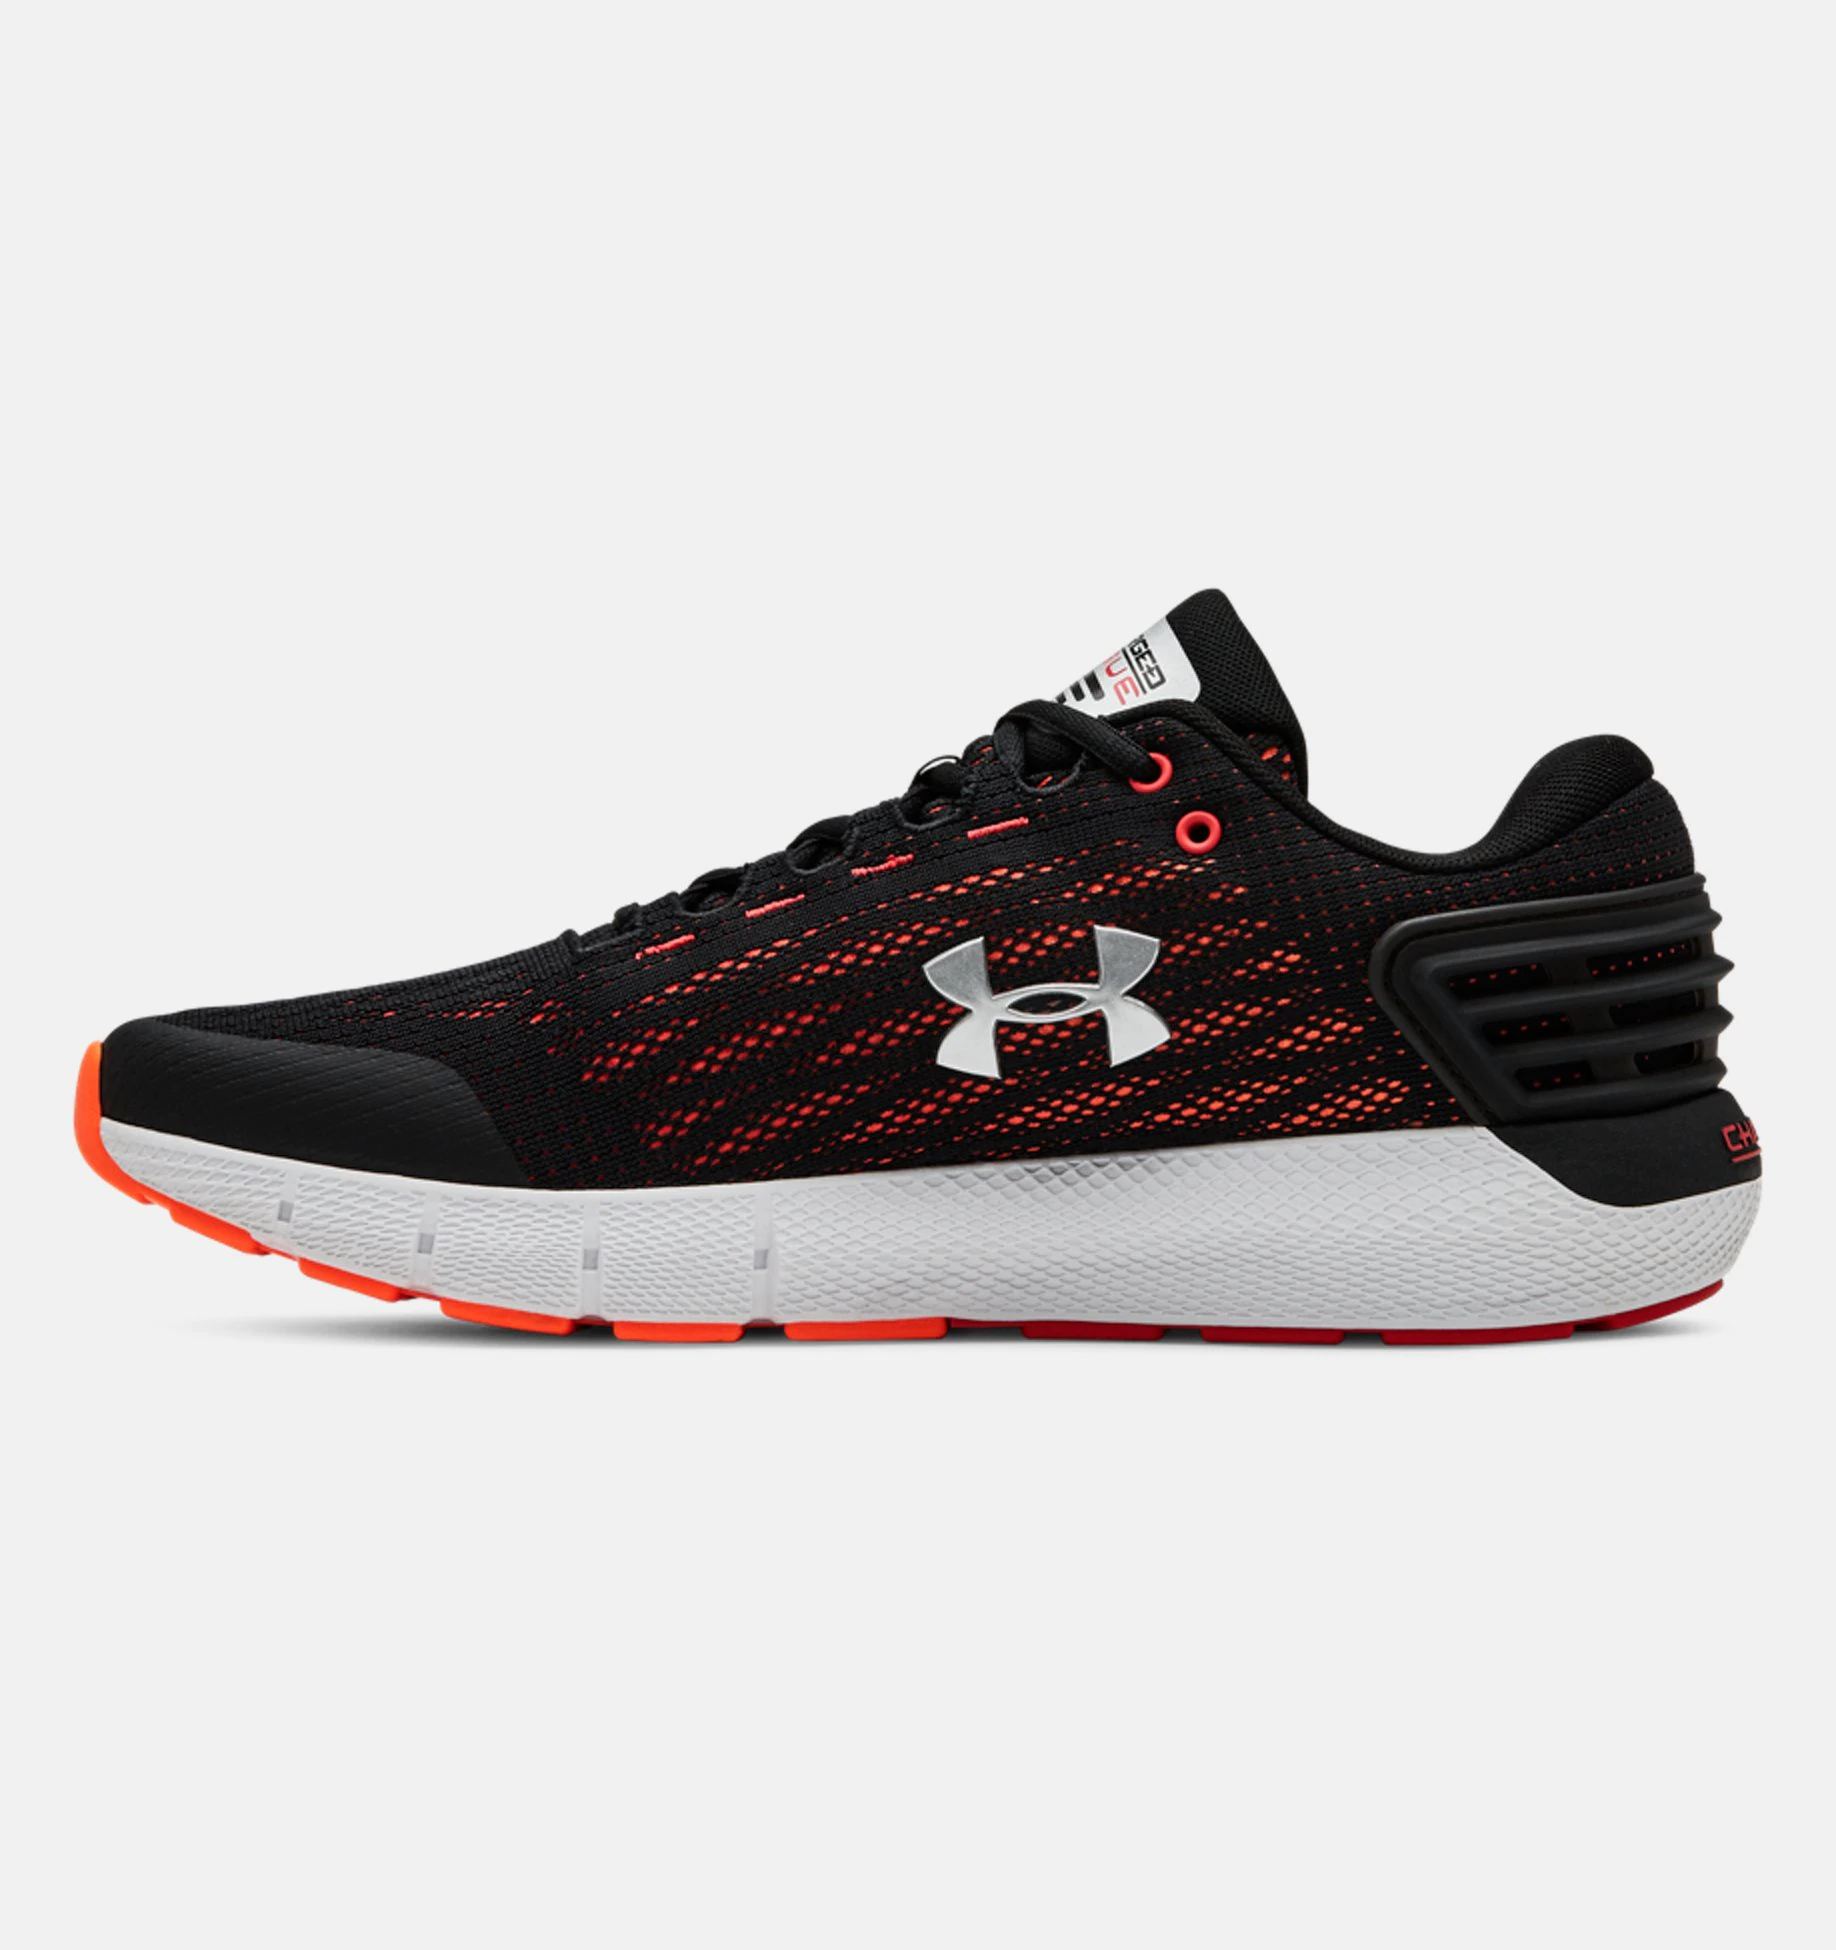 Under Armour Men's Rouge Running Shoes